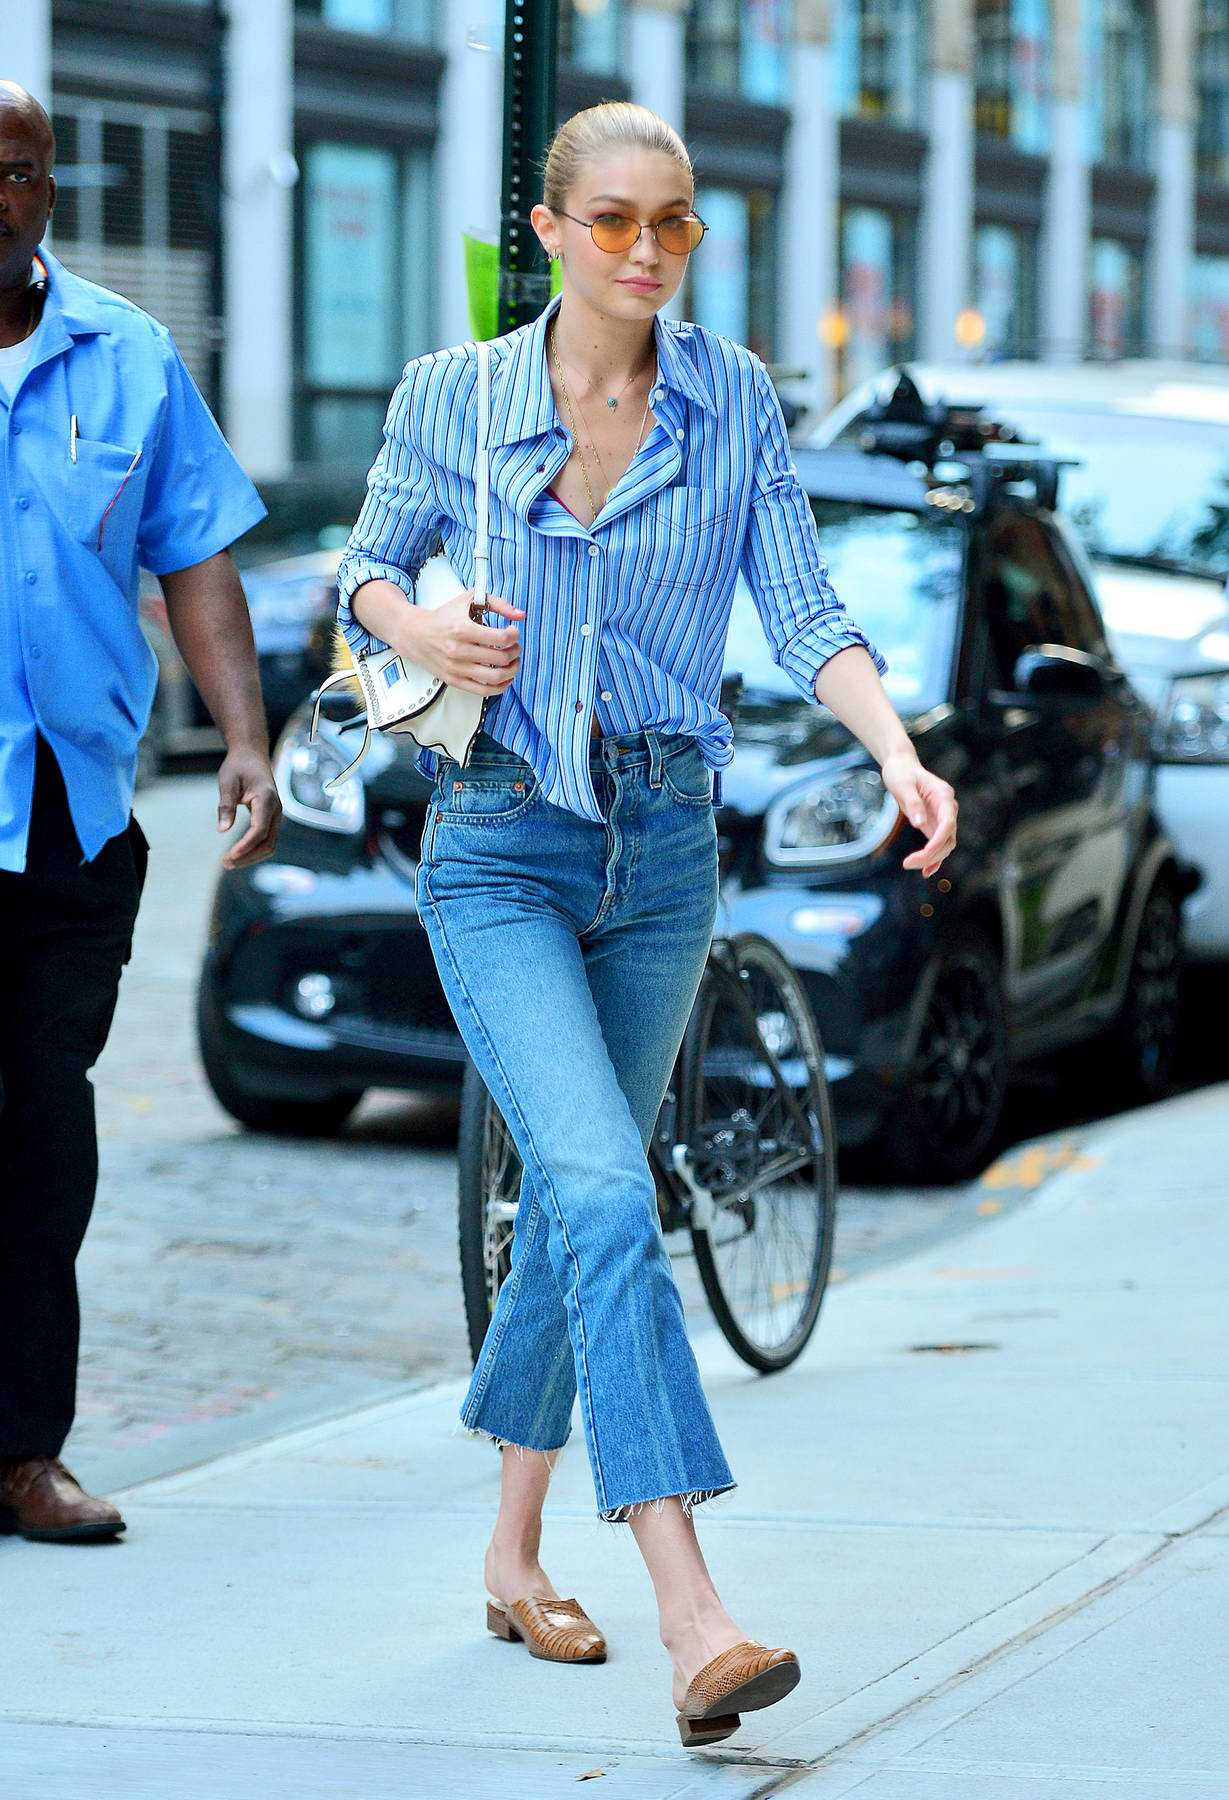 Gigi Hadid rocking a Denim look as she arrives back at her Apartment in New York